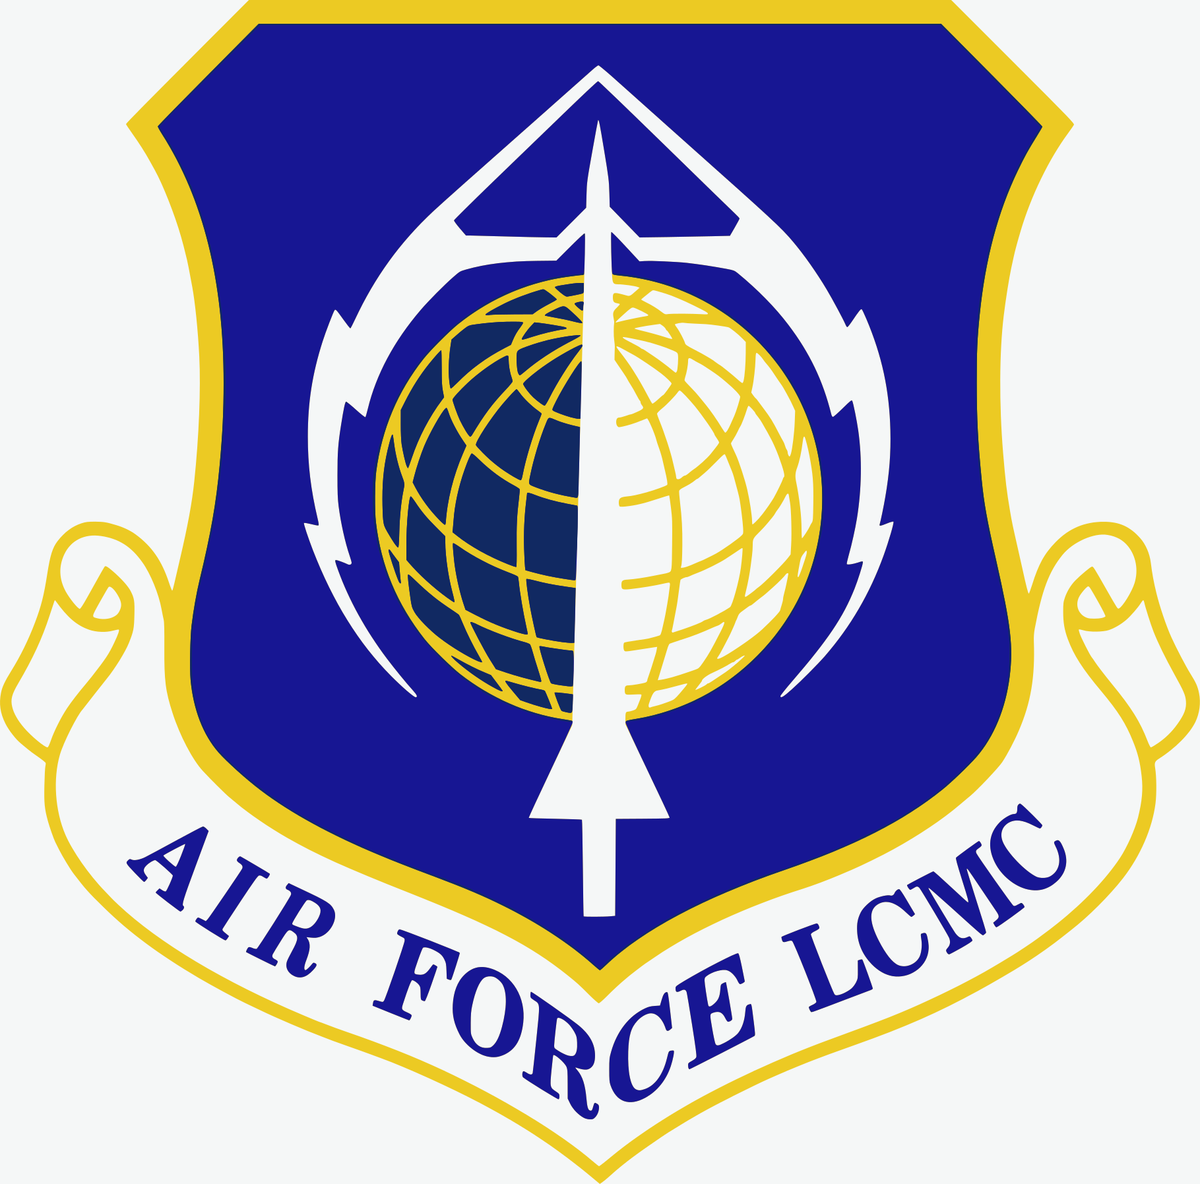 how life in the air force The air force association exists as an organization so we can all be airmen for life it is the very foundation on which general jimmy doolittle built afa.